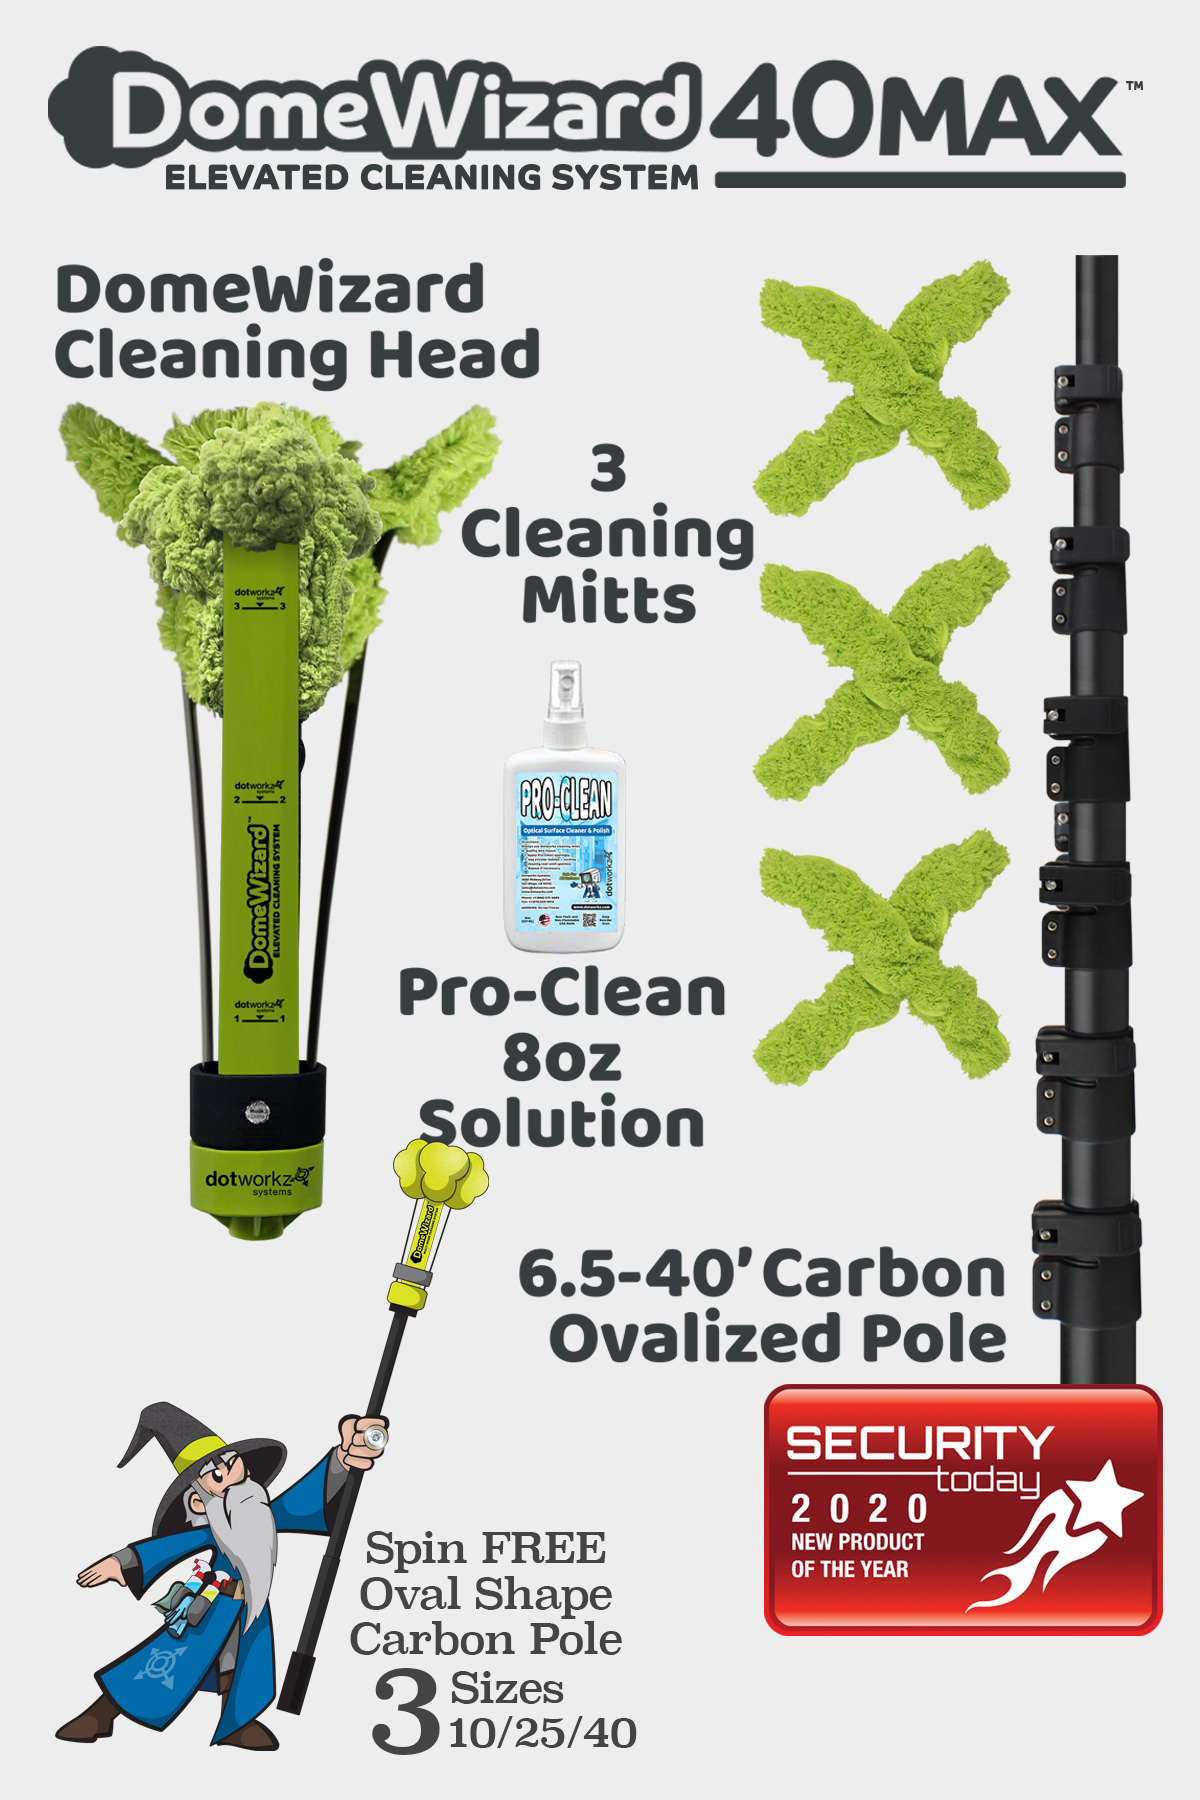 DomeWizard 40MAX - Elevated Cleaning System with Multiple Cleaning Modes from Dotworkz 2020